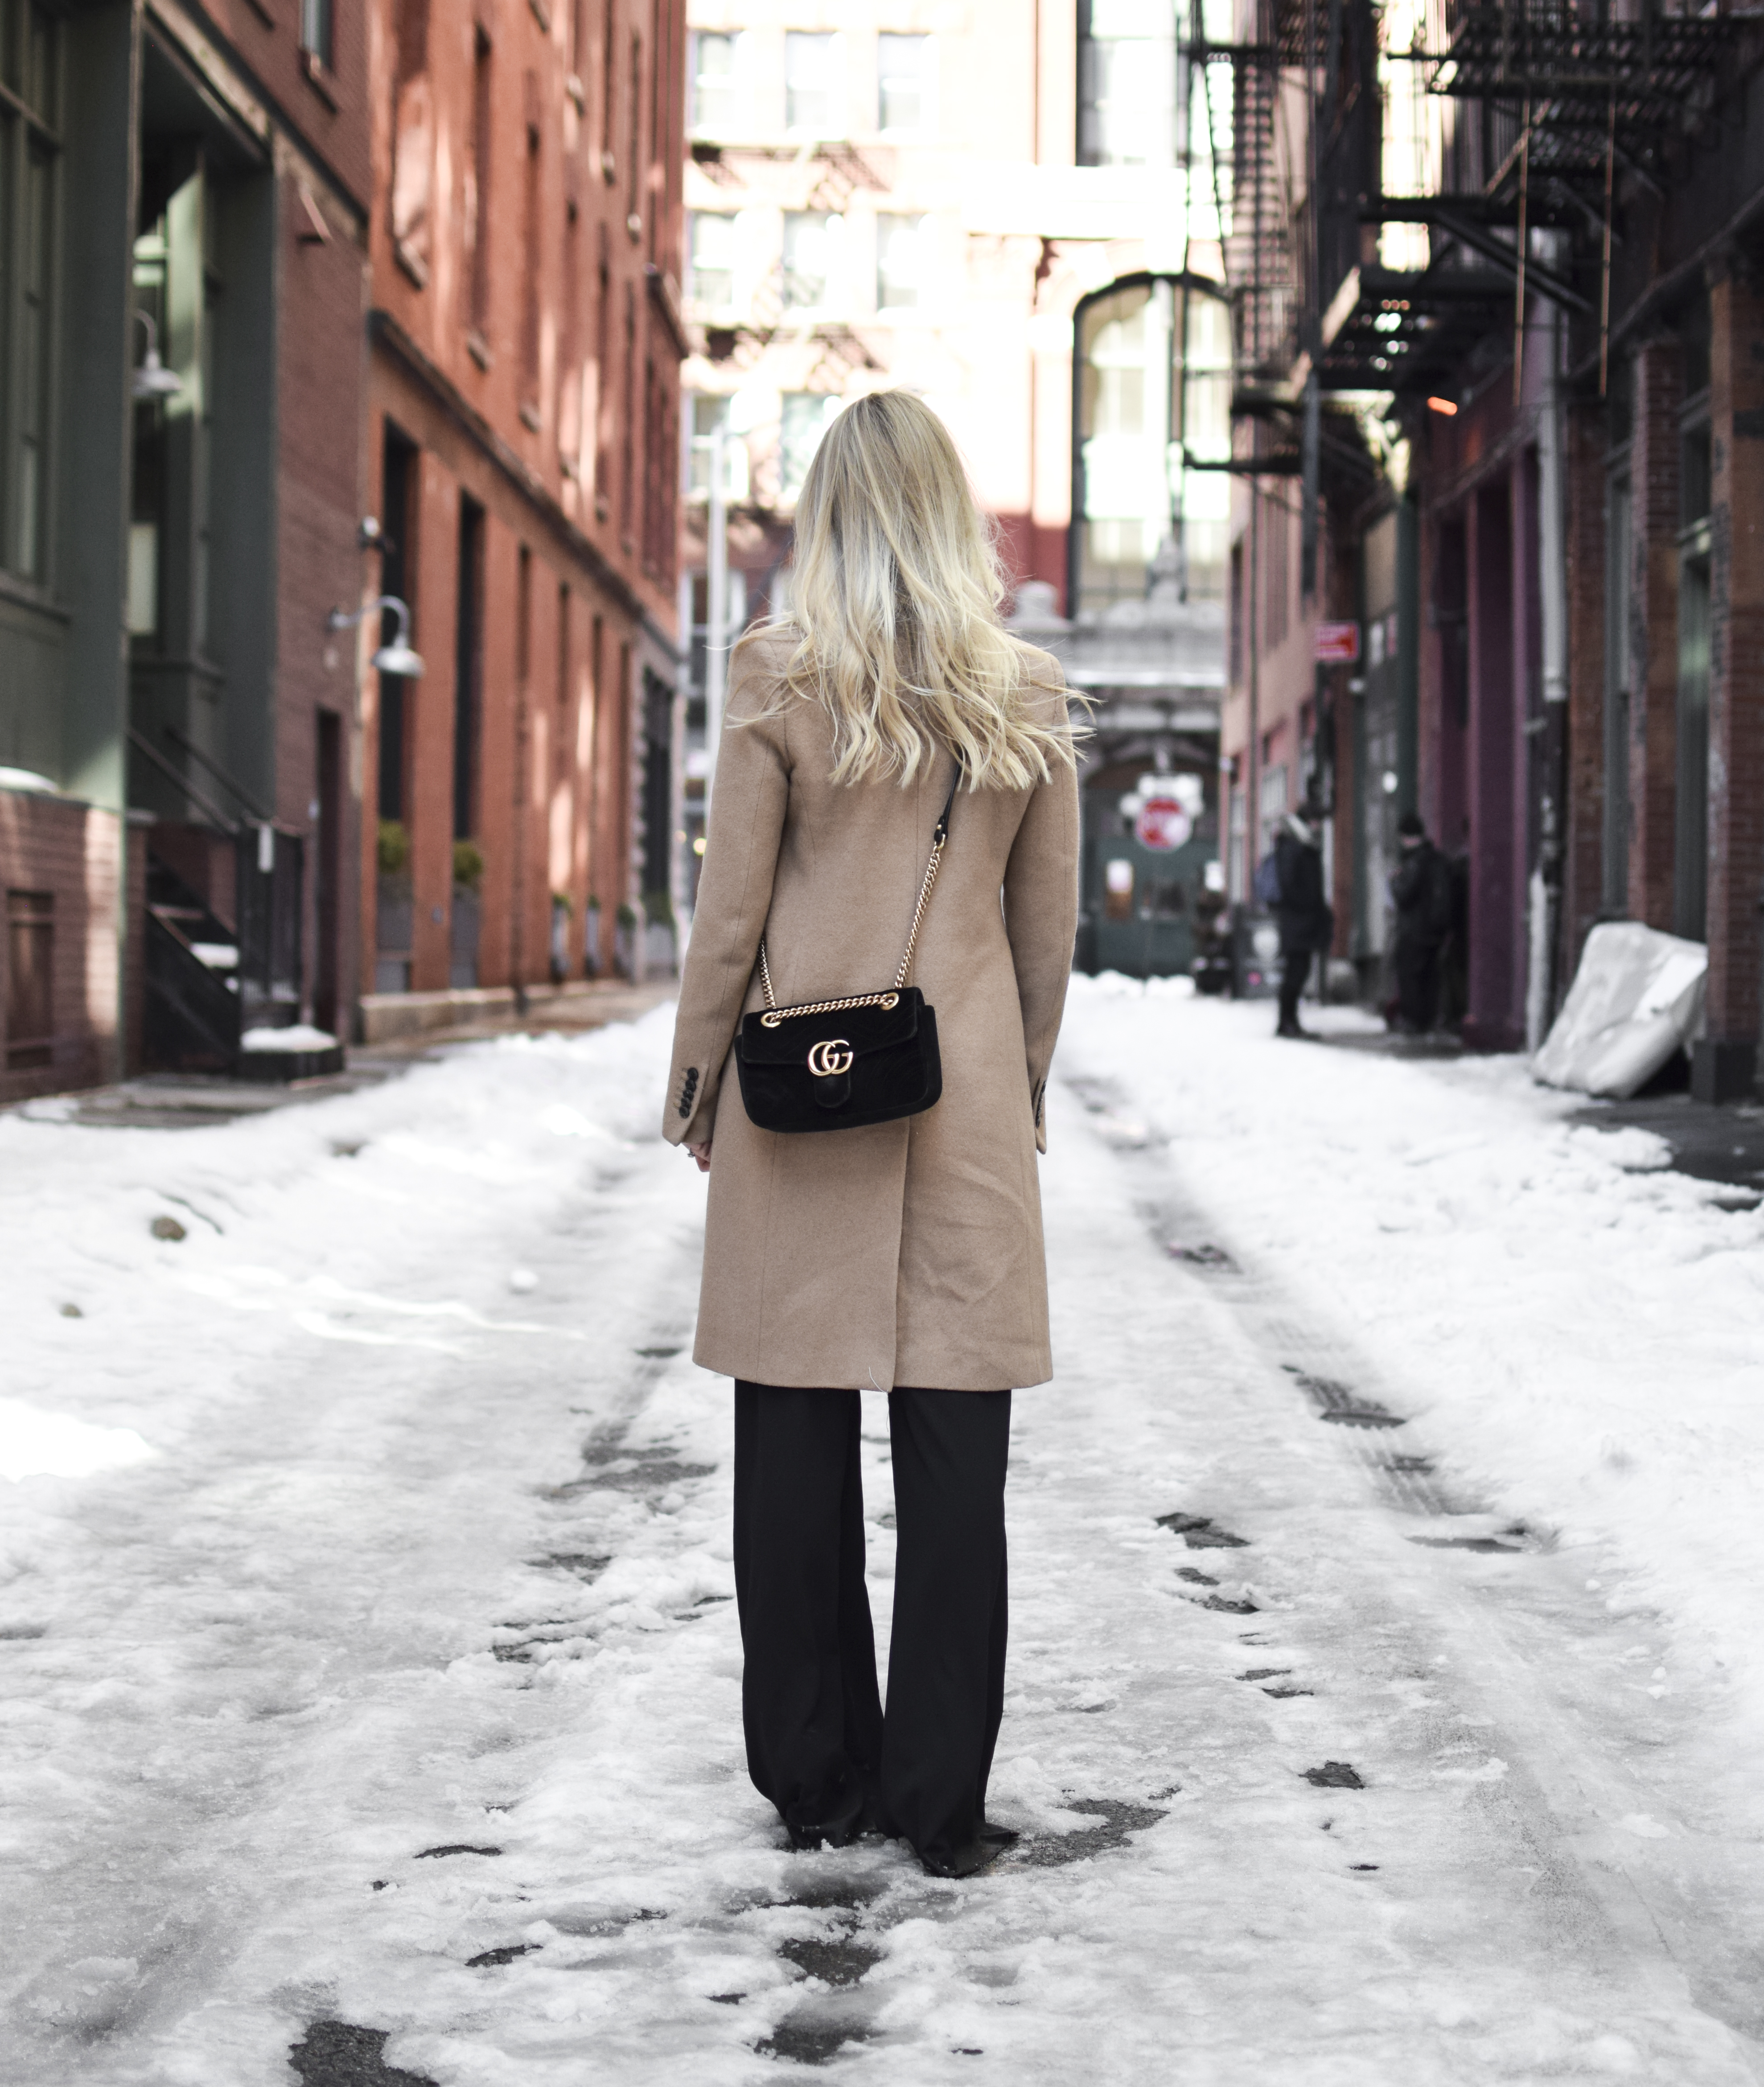 sanne_outfit_tribeca_new_york_1